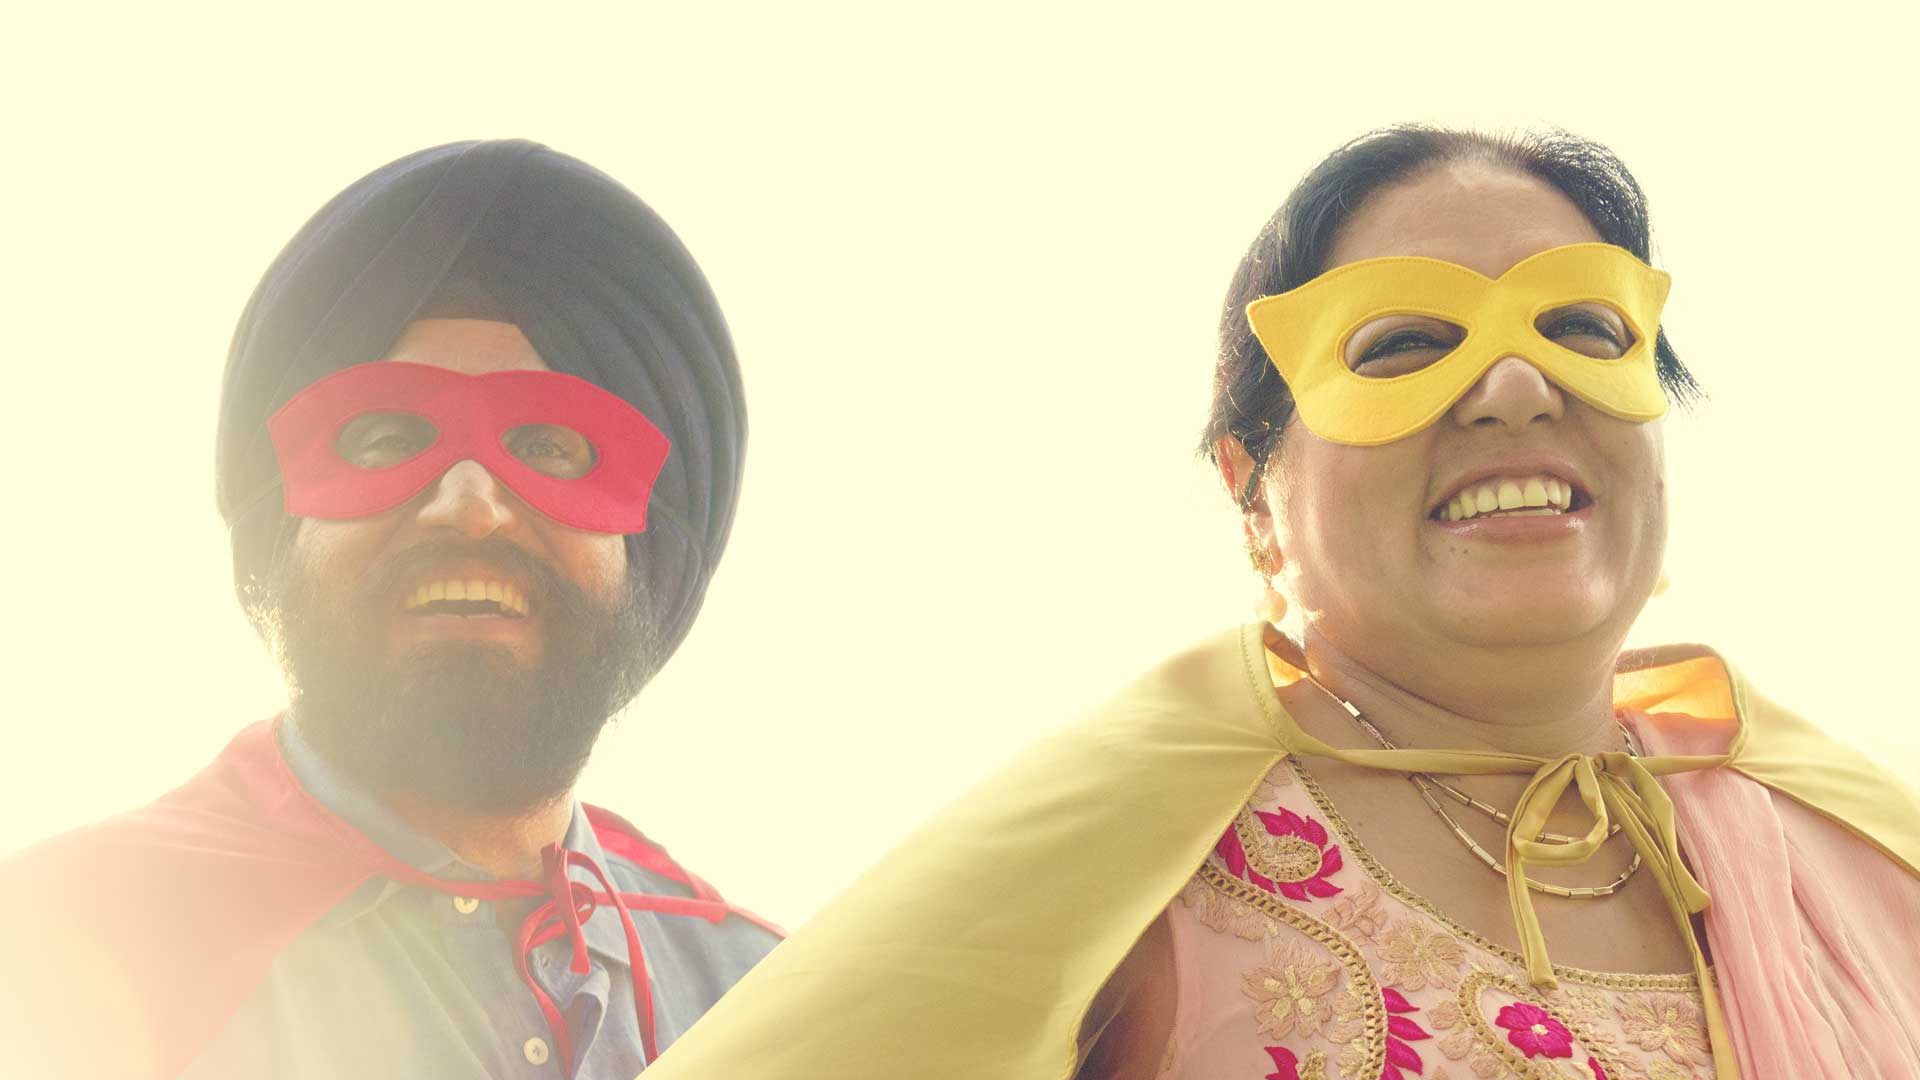 happy and smiling Indian couple wearing superhero masks